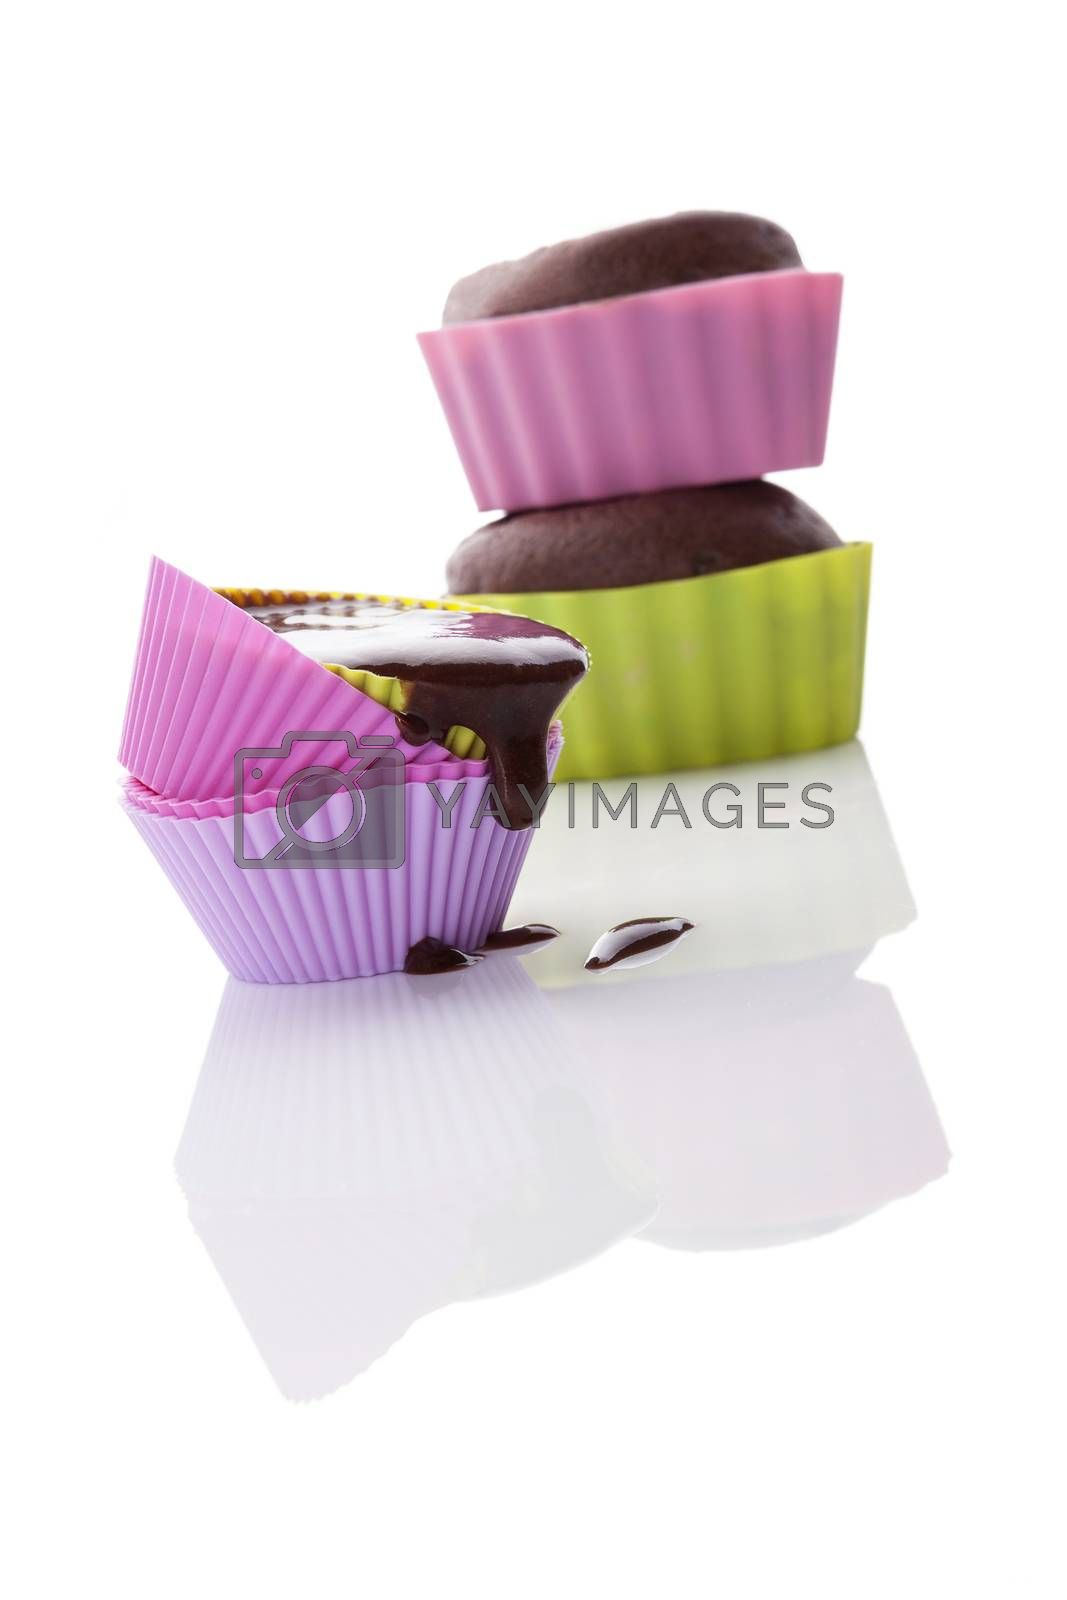 Cupcake mixture dropping from baking form isolated on white background. Making cupcakes.